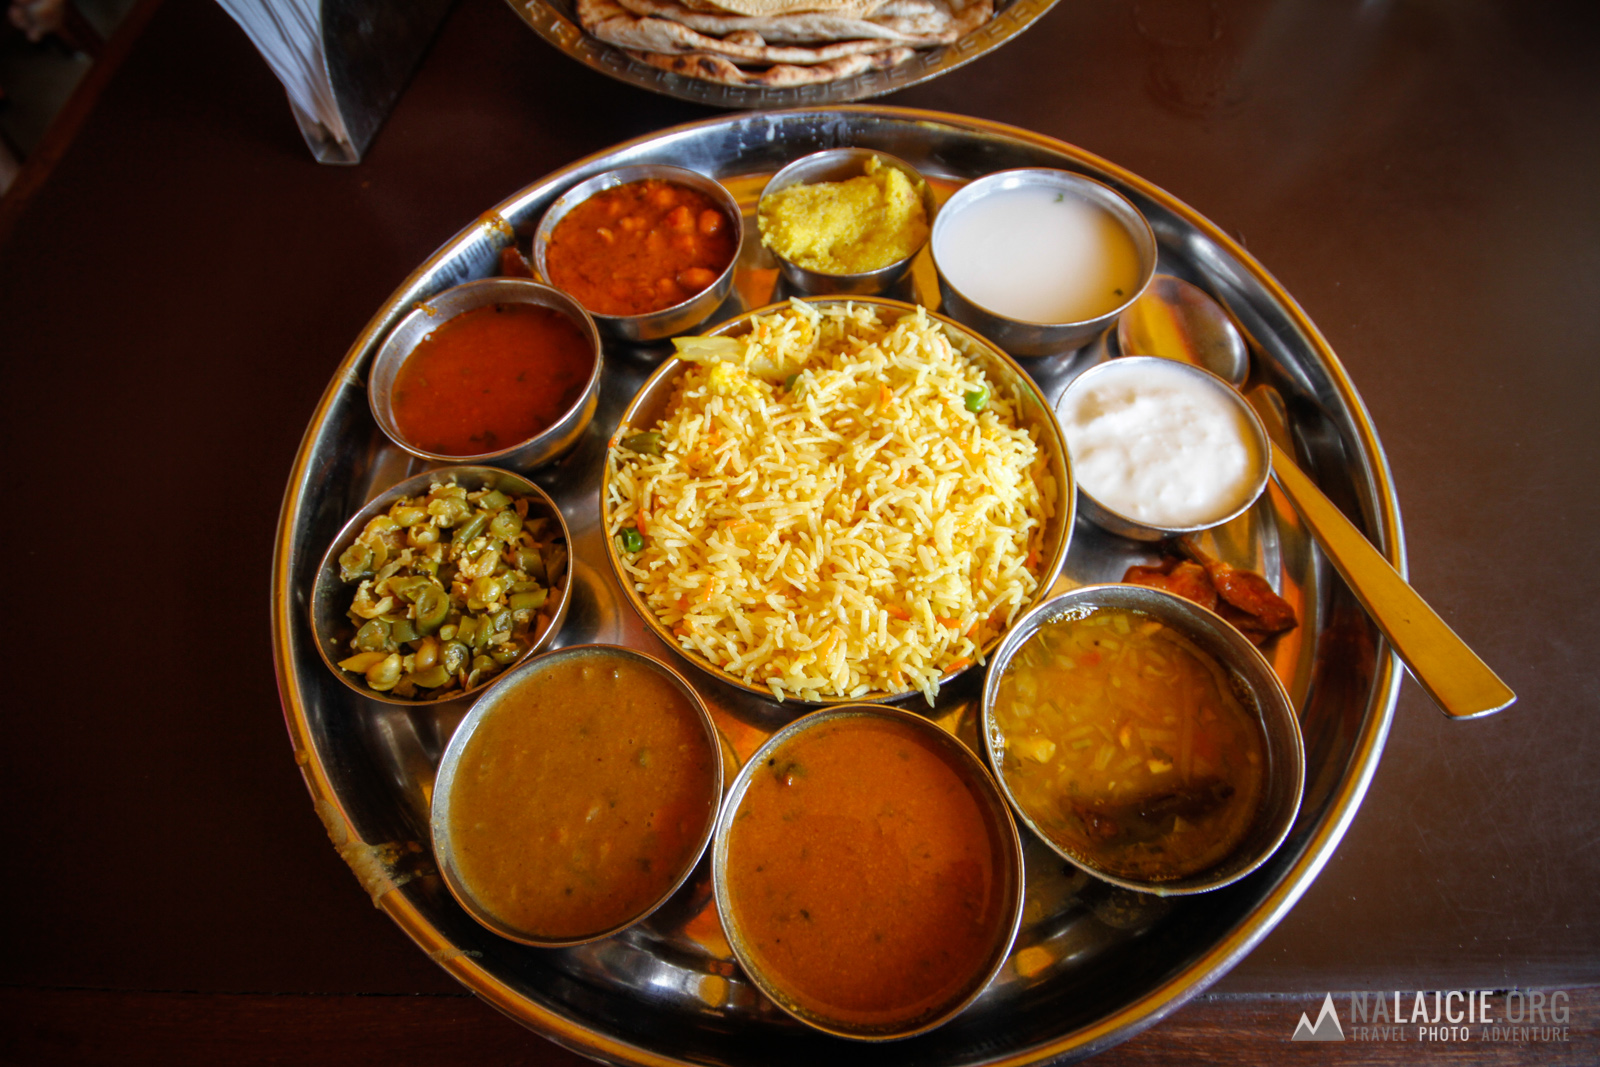 Na pyszne south india thali!